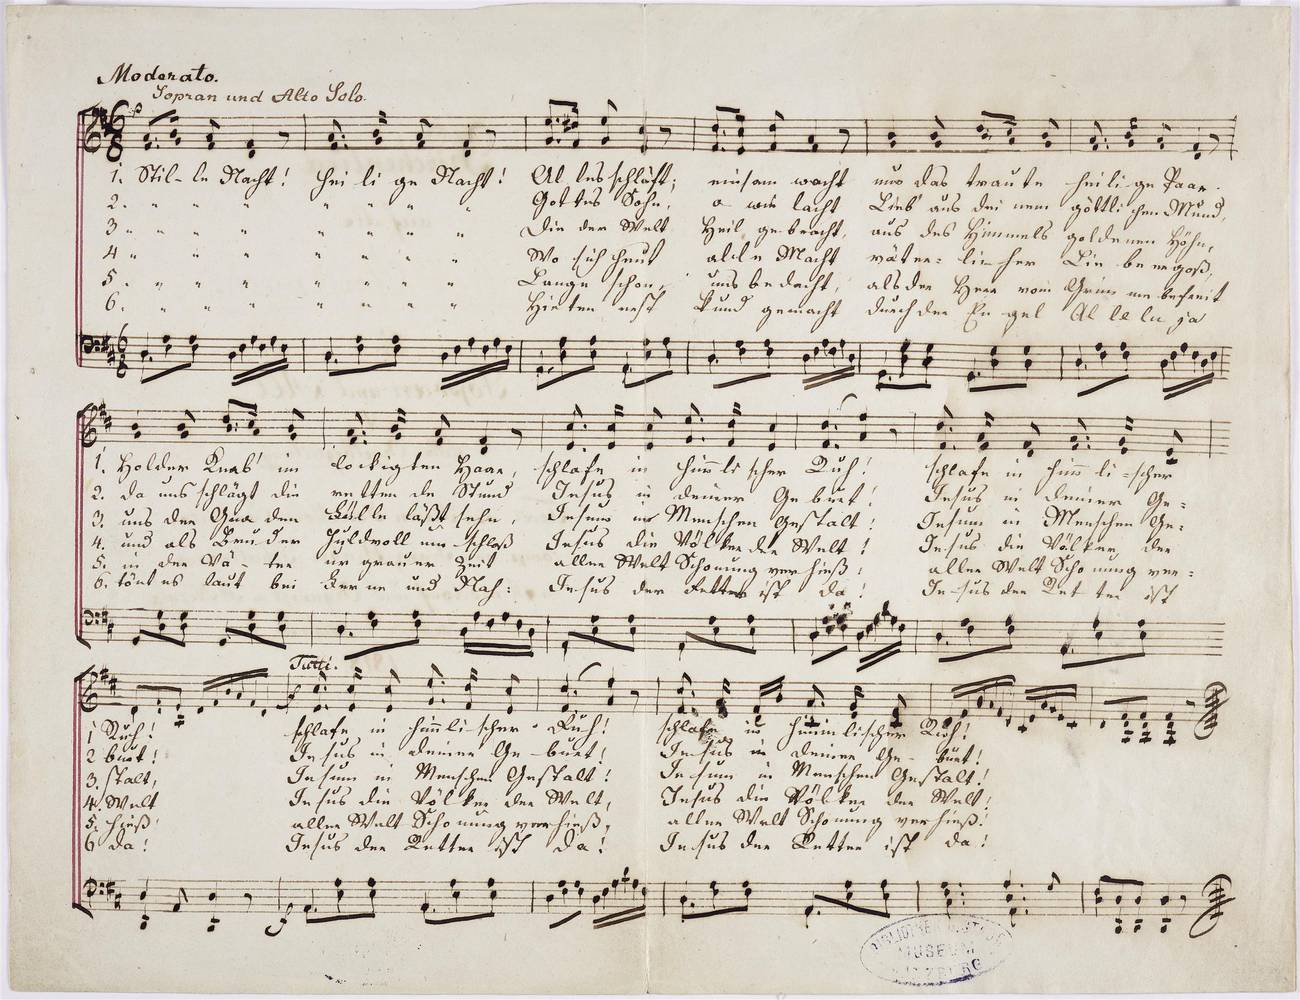 Hymn for the Holy Christmas Night for soprano and alto with dolce organ accompaniment (Autograph VII), Franz Xaver Gruber (1787–1863), Um 1860, Tinte auf Papier, Salzburg Museum, Inv.-Nr. BIB HS 679